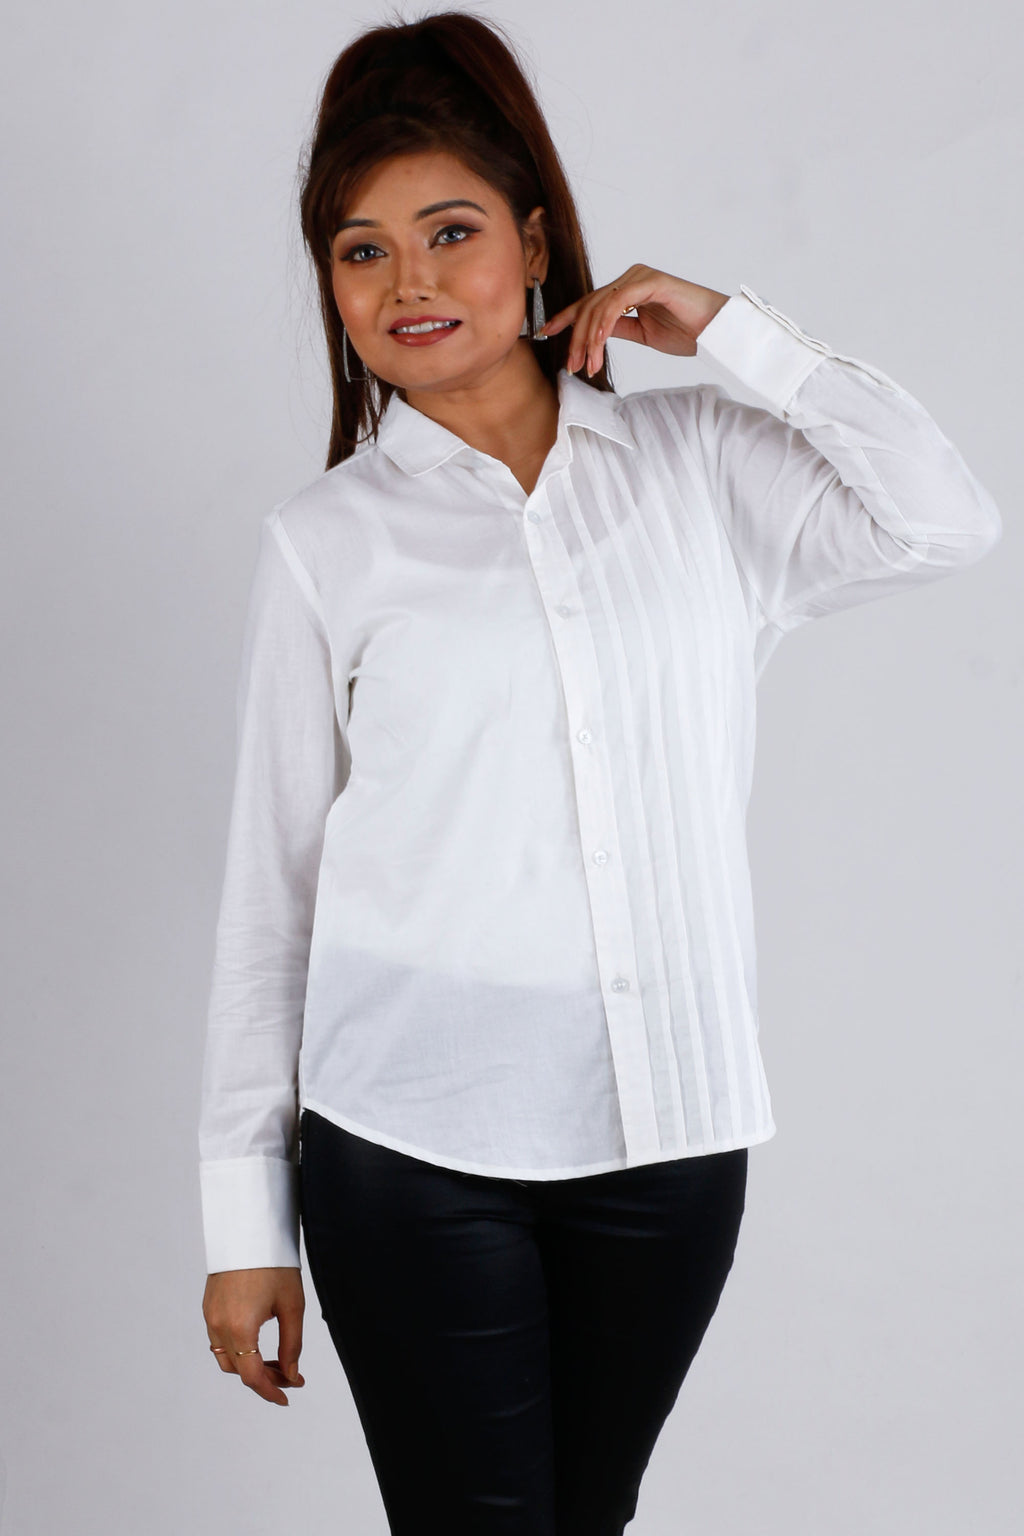 Womens Formal White Pintuck Shirt - K1585W